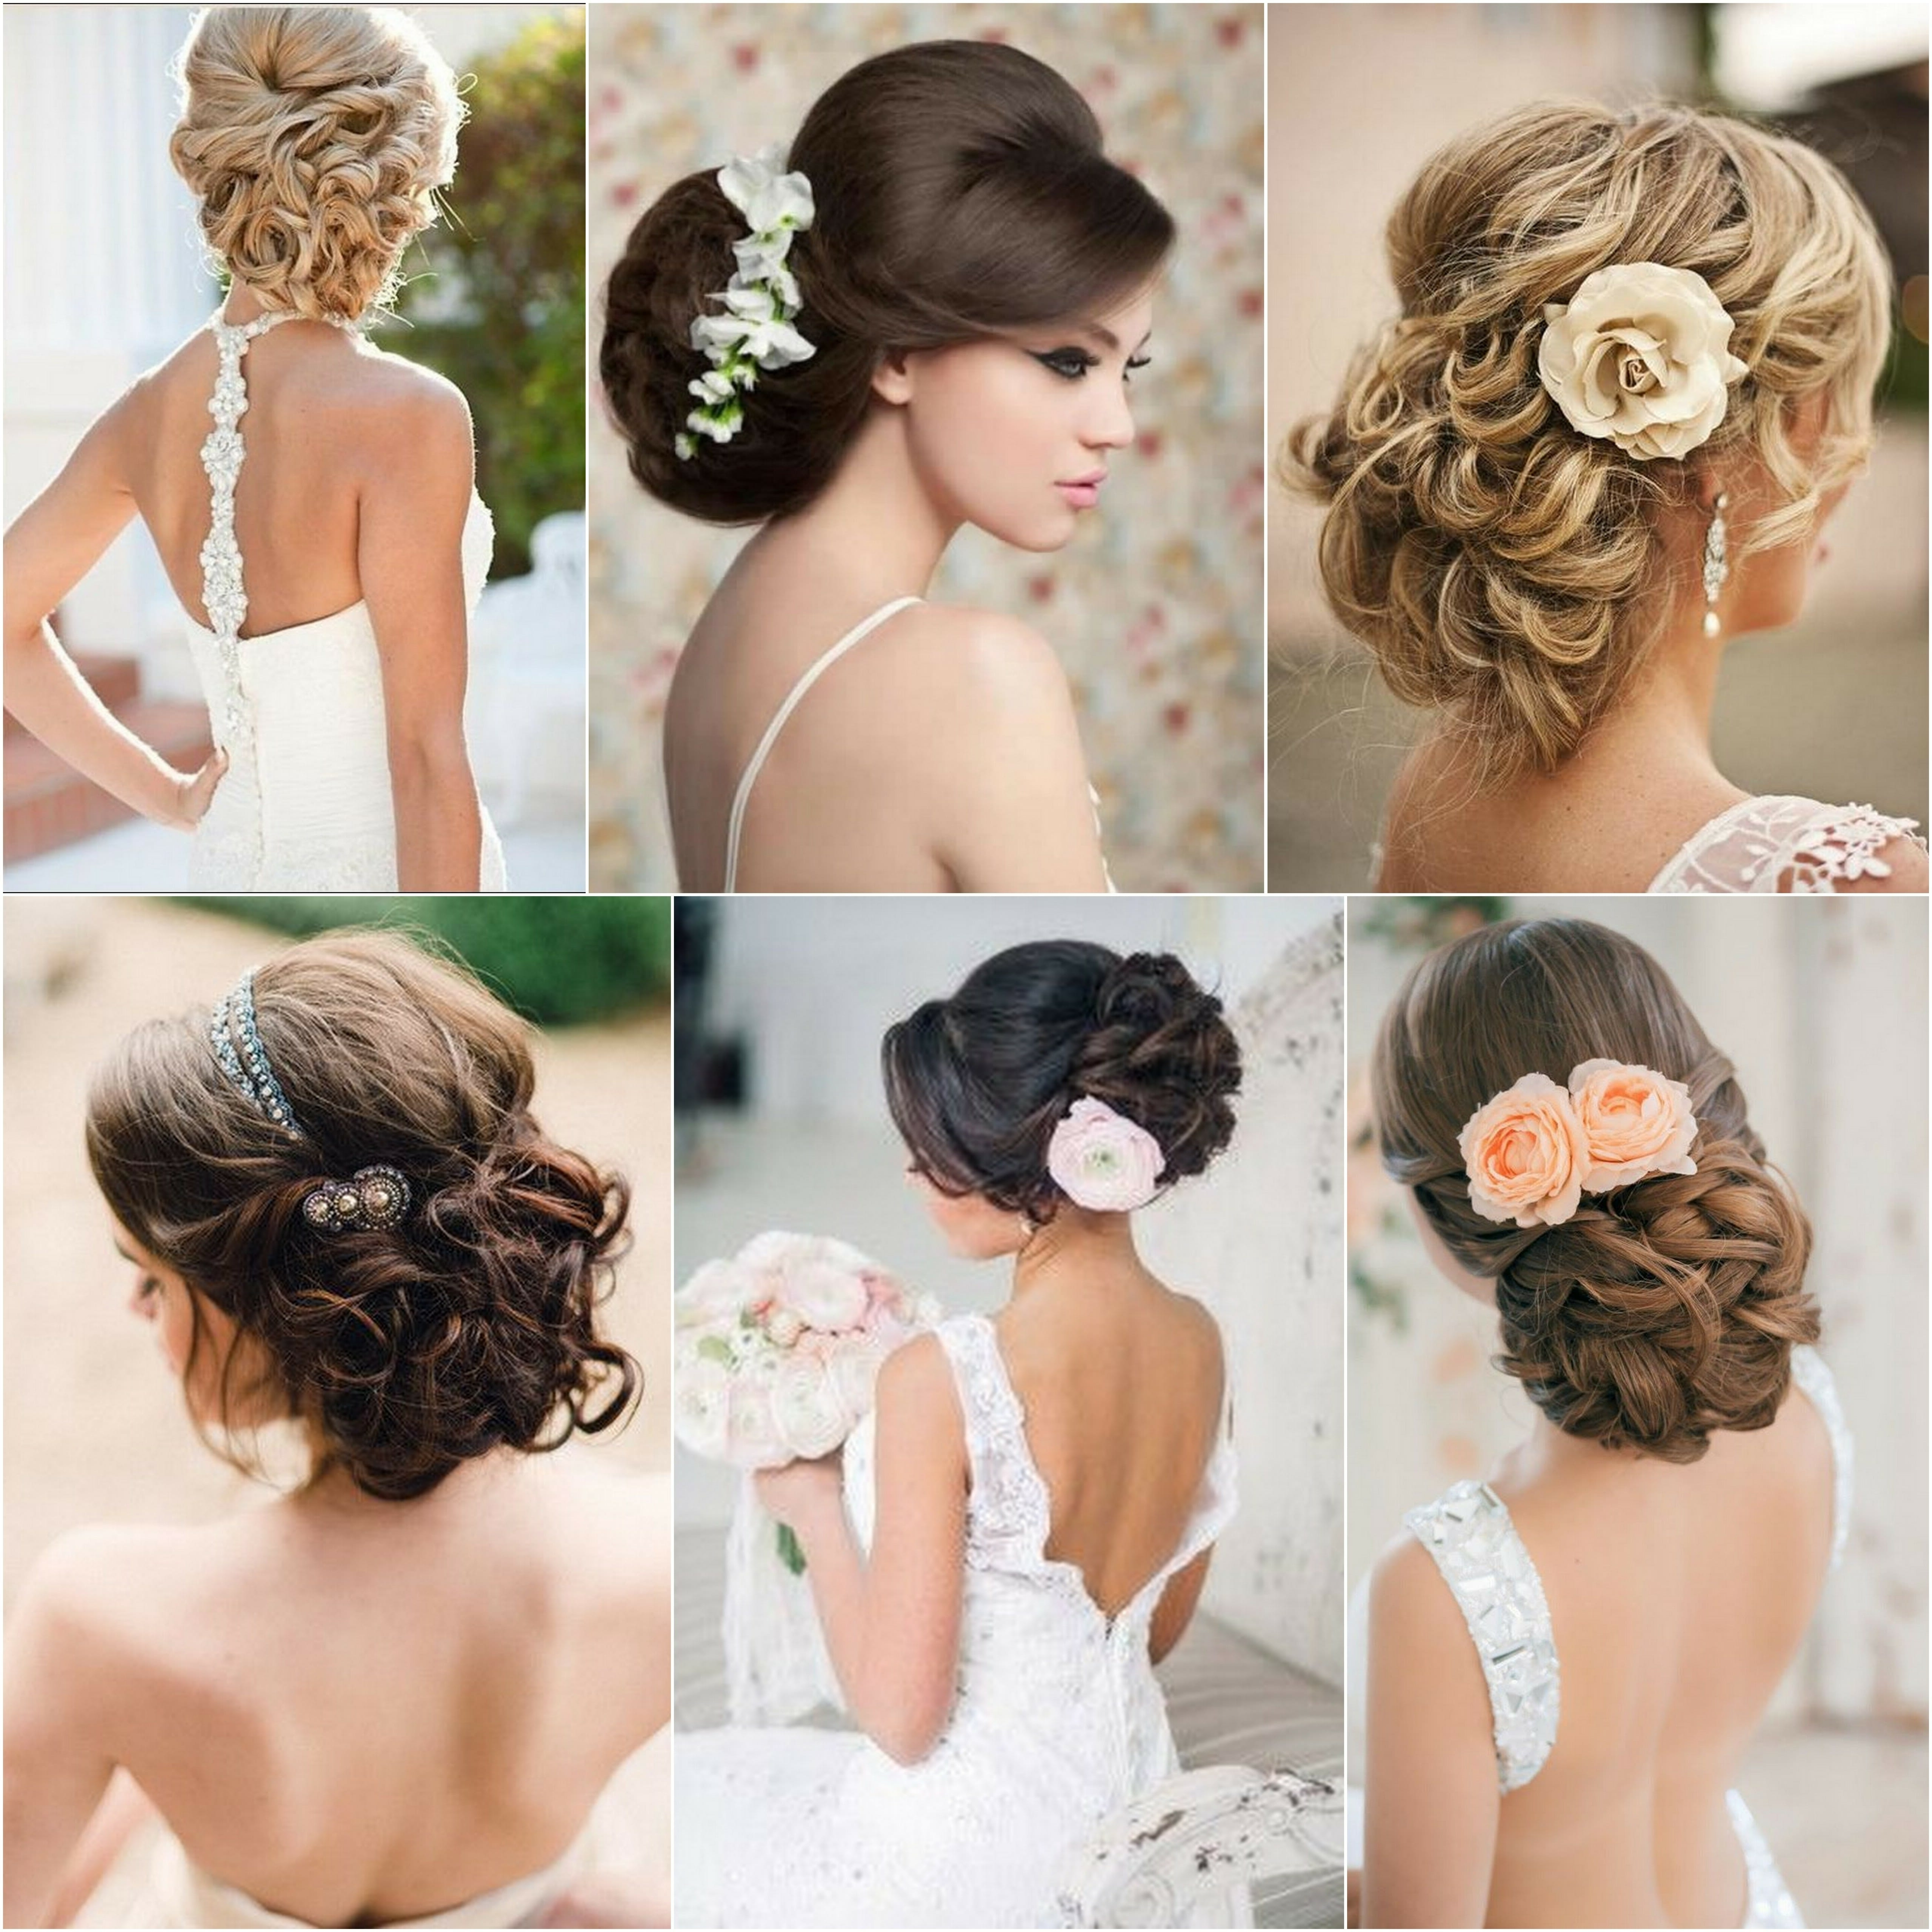 Fashionable Wedding Hairstyles With Hair Extensions Inside Trend Alert: Wedding Hairstyles – Hidden Crown Hair Extensions (View 6 of 15)